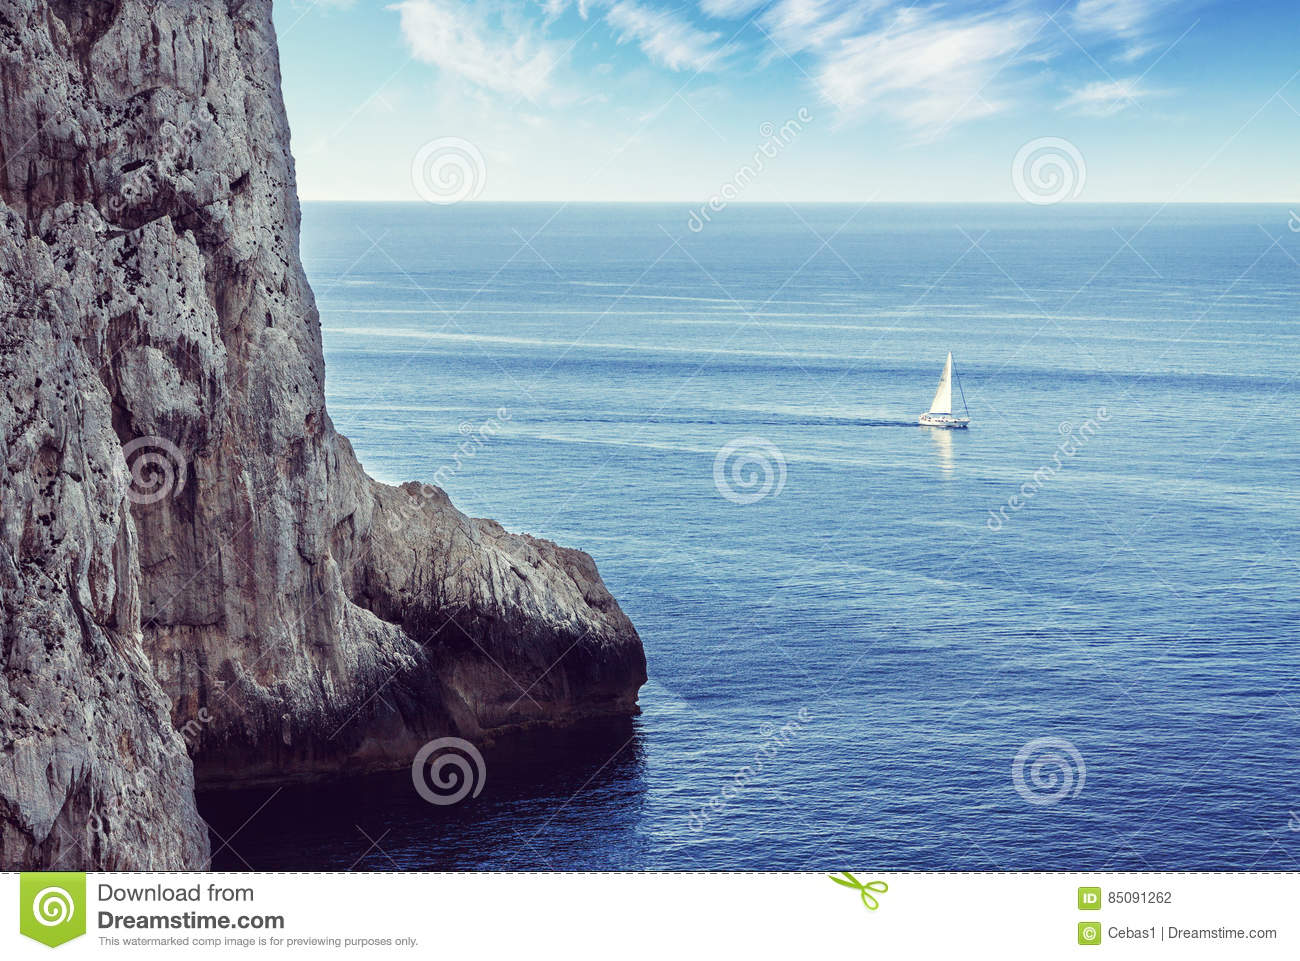 Lonely sailboat sailing on the sea